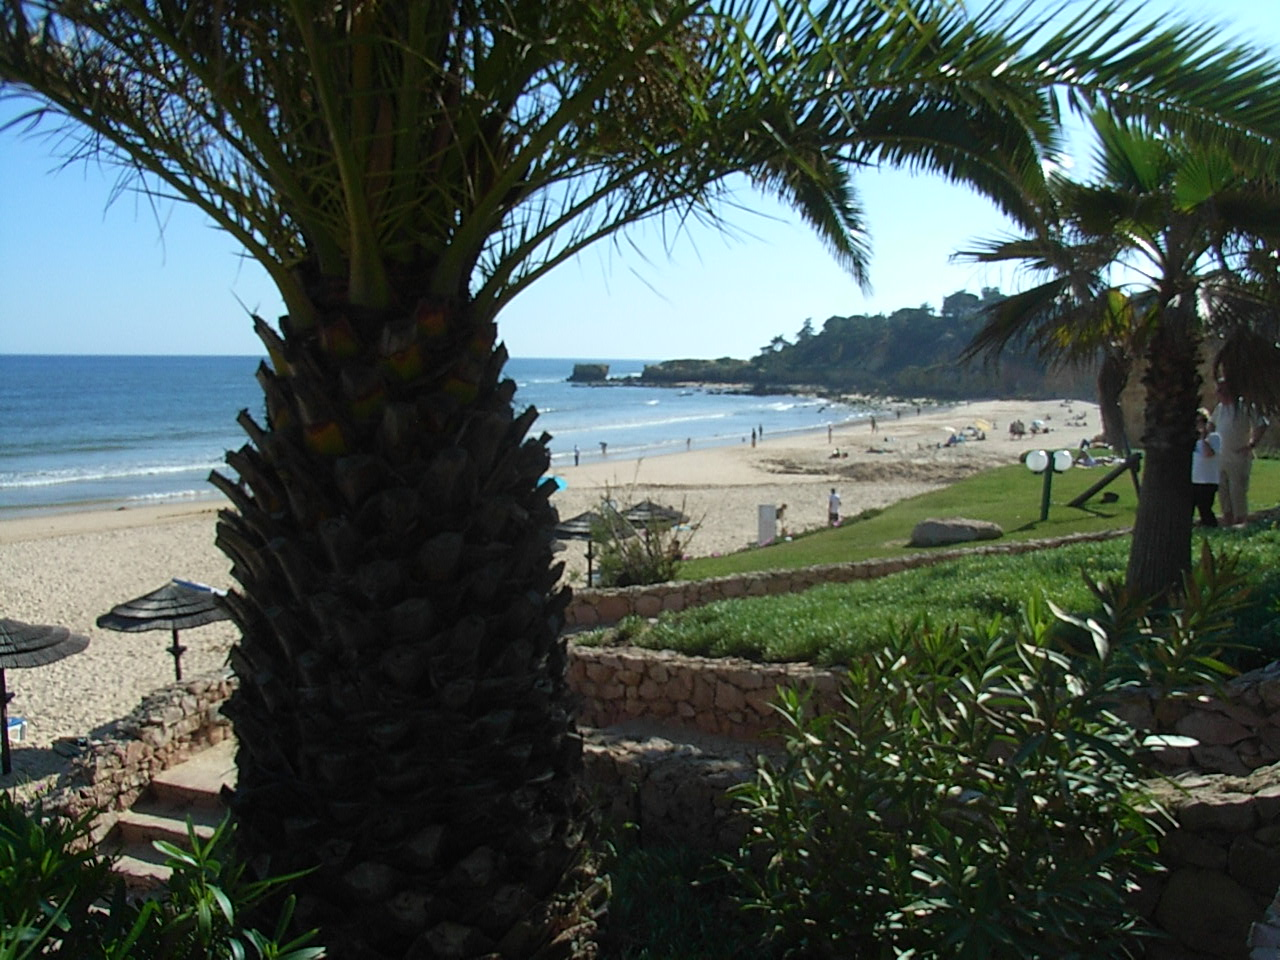 East of the villa. The picture postcard beach of Santa Eulalia is worth a visit.